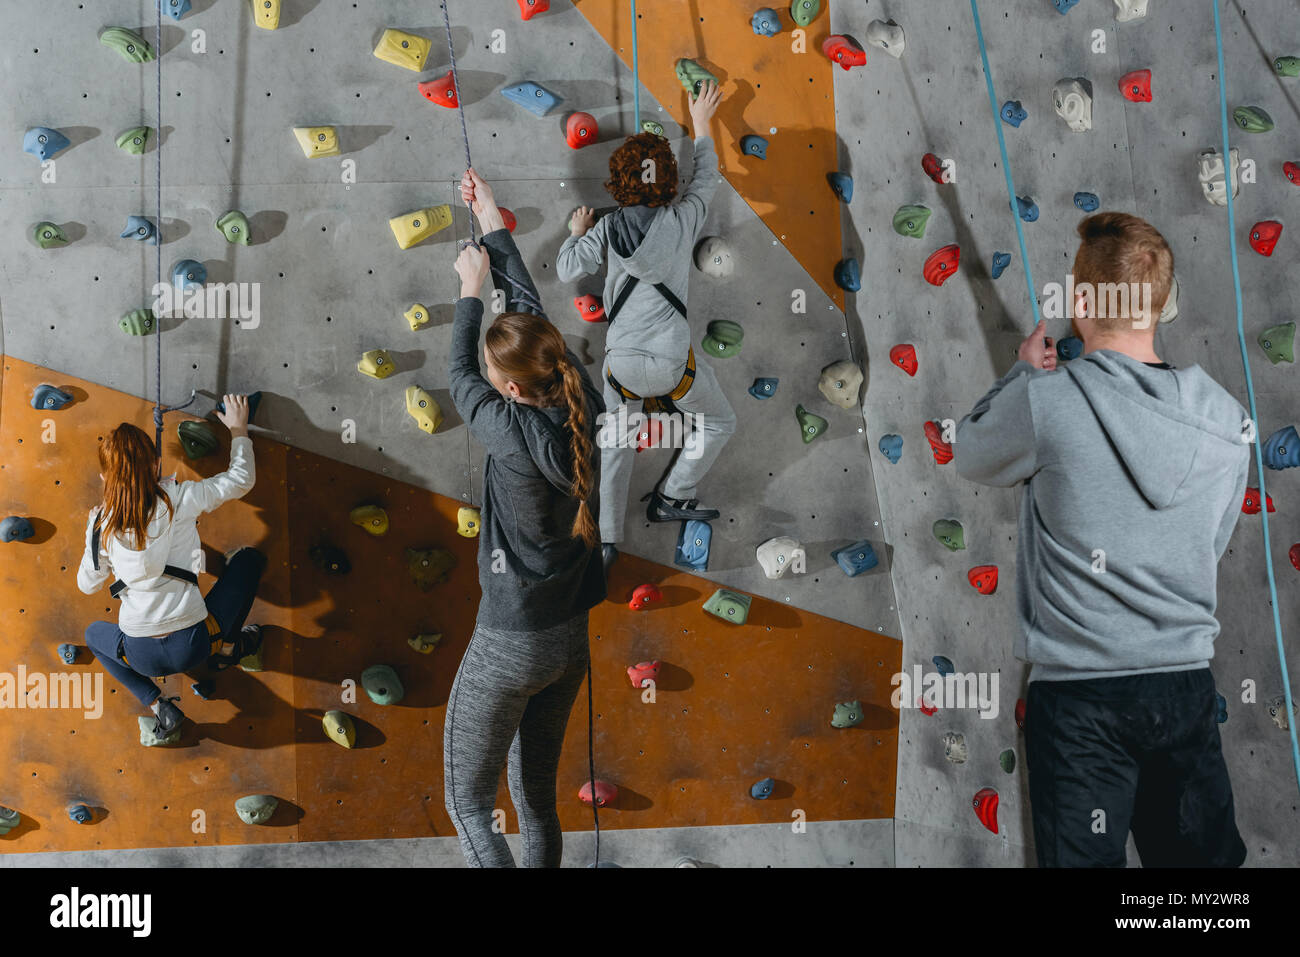 Two little kids climbing a wall at gym and their mother and father holding securing ropes - Stock Image